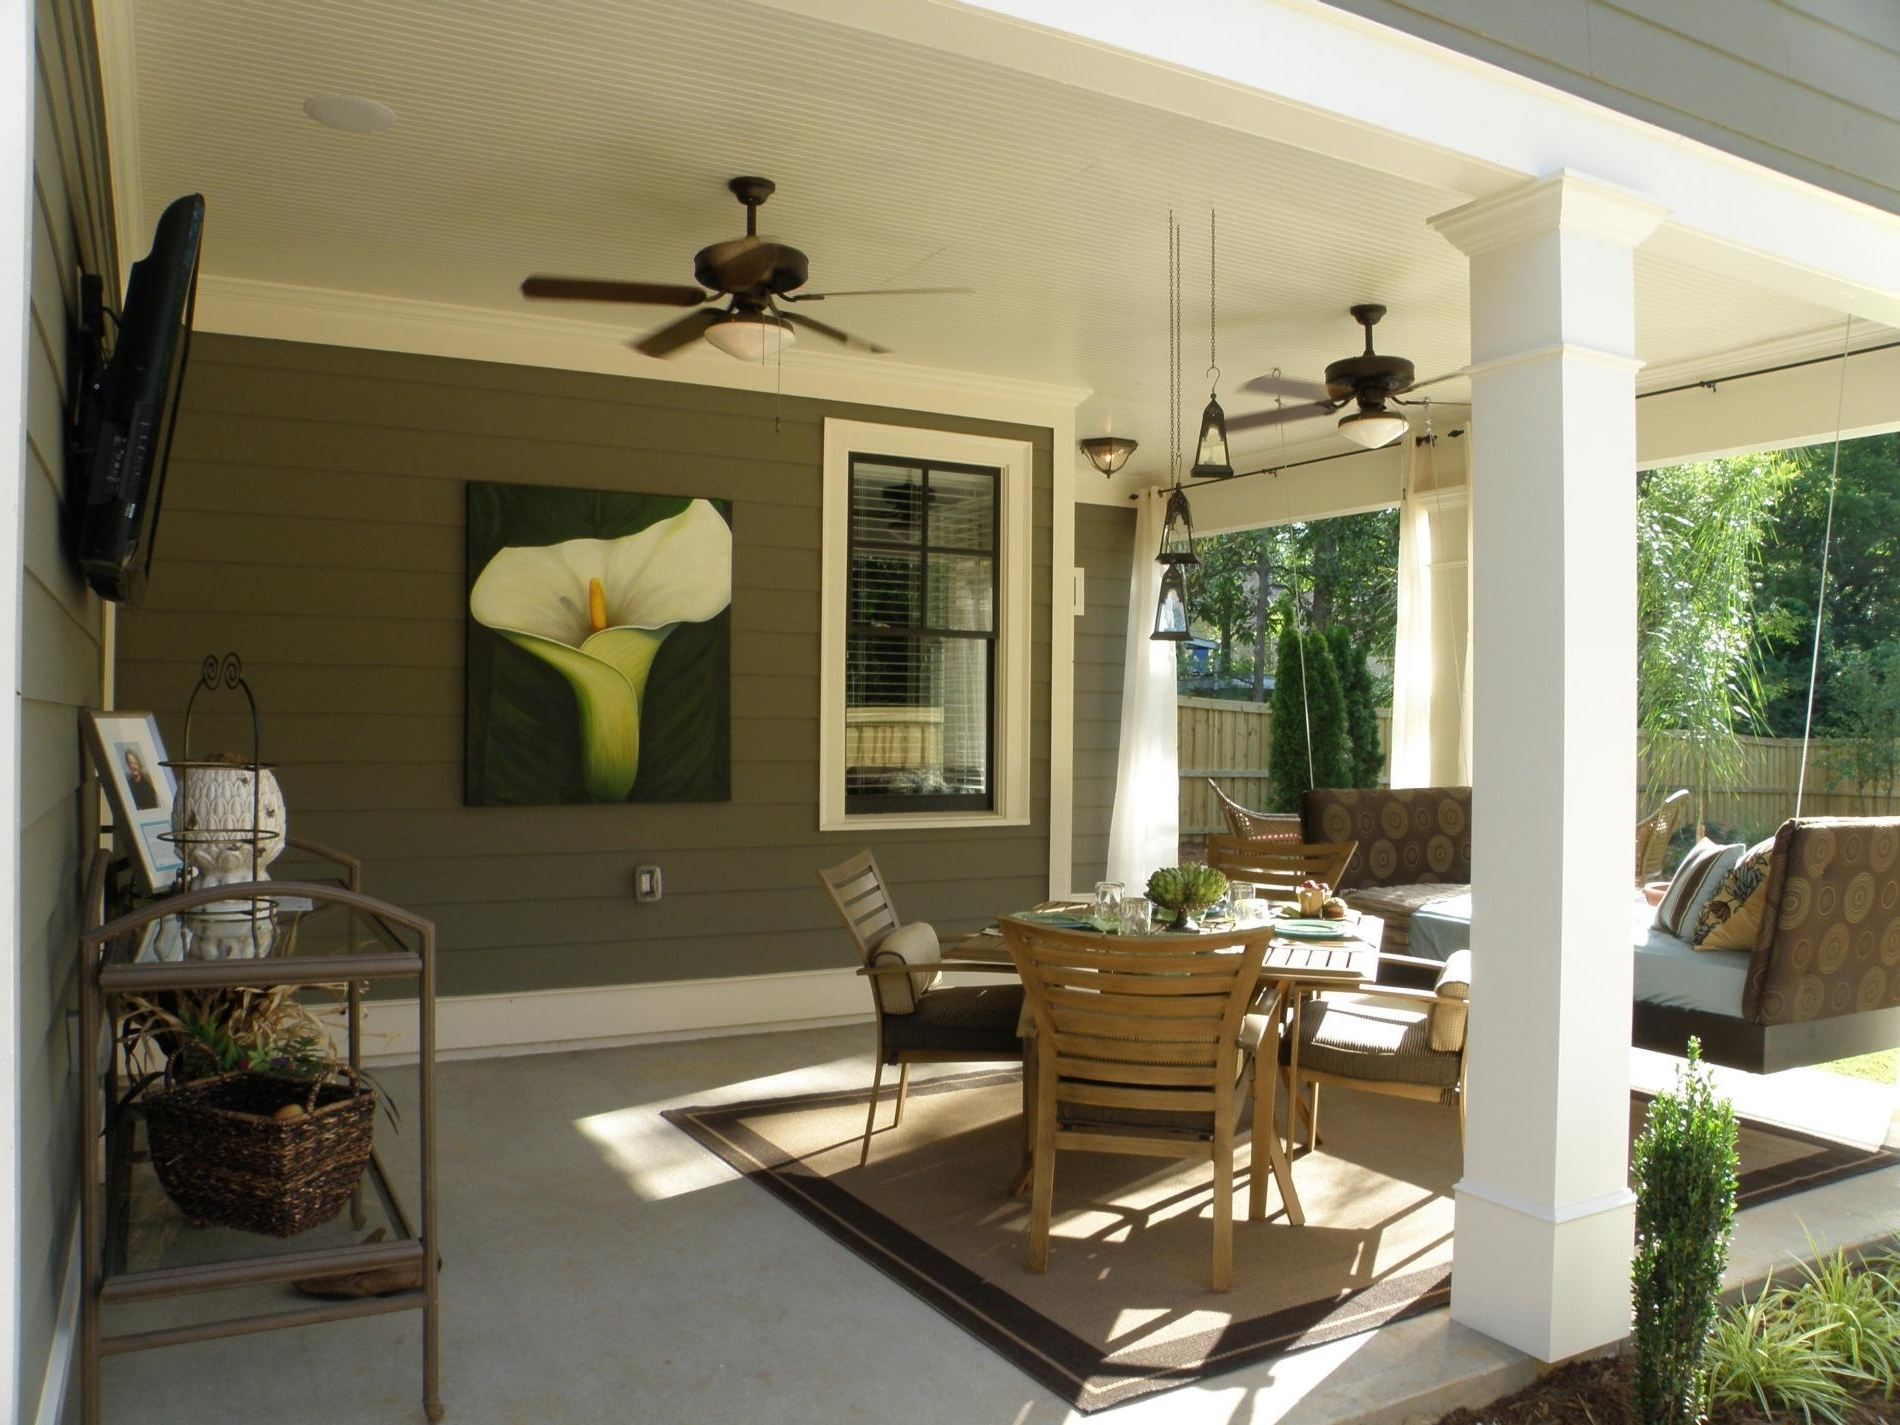 Favorite Lovable Outdoor Patio Fans Backyard Decorating Pictures 1000 Ideas For Outdoor Ceiling Fans For Patios (View 8 of 20)